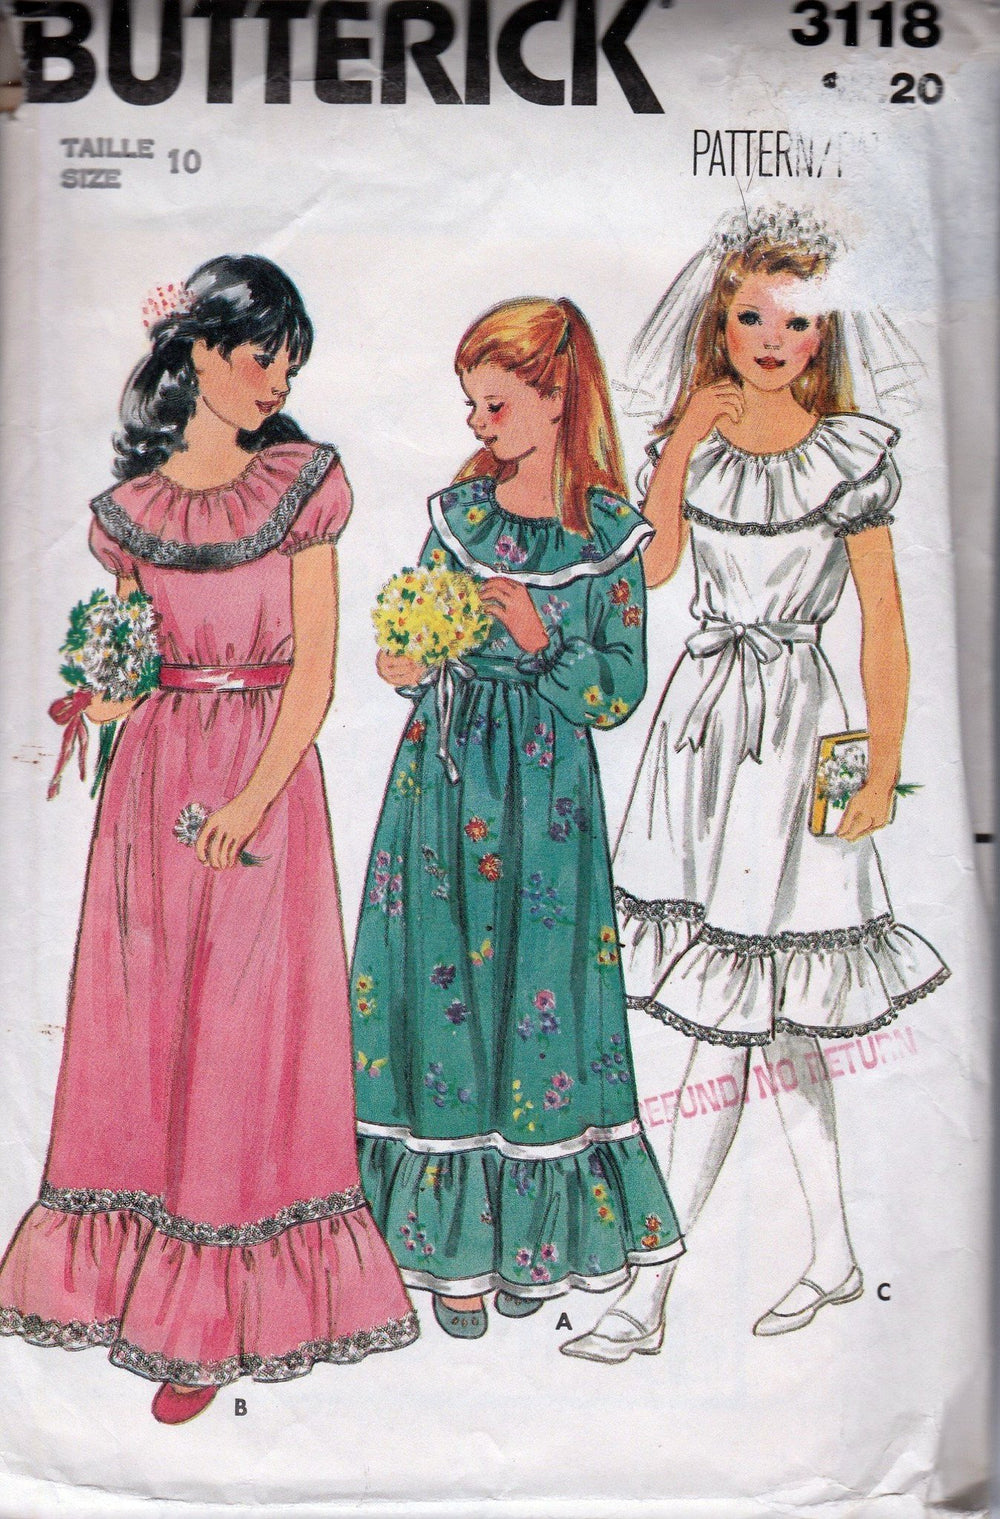 Butterick 3118 Girls First Communion Flower Girl Gown Dress Vintage Pattern 1970's - VintageStitching - Vintage Sewing Patterns